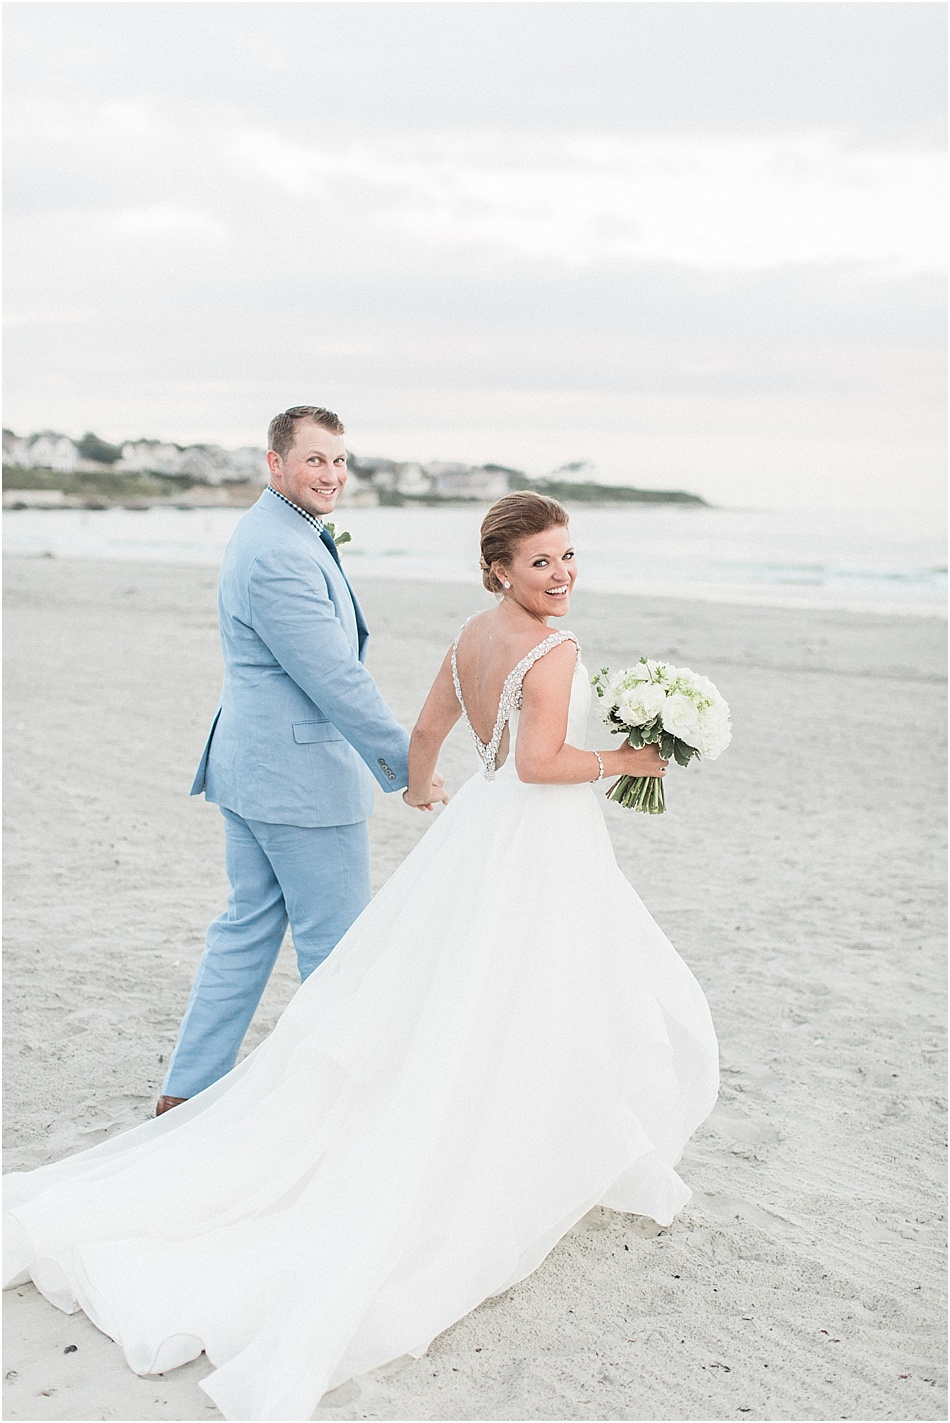 kyndra_matt_newport_beach_house_rhode_island_striped_bridesmaids_dresses_cape_cod_boston_wedding_photographer_Meredith_Jane_Photography_photo_0210.jpg